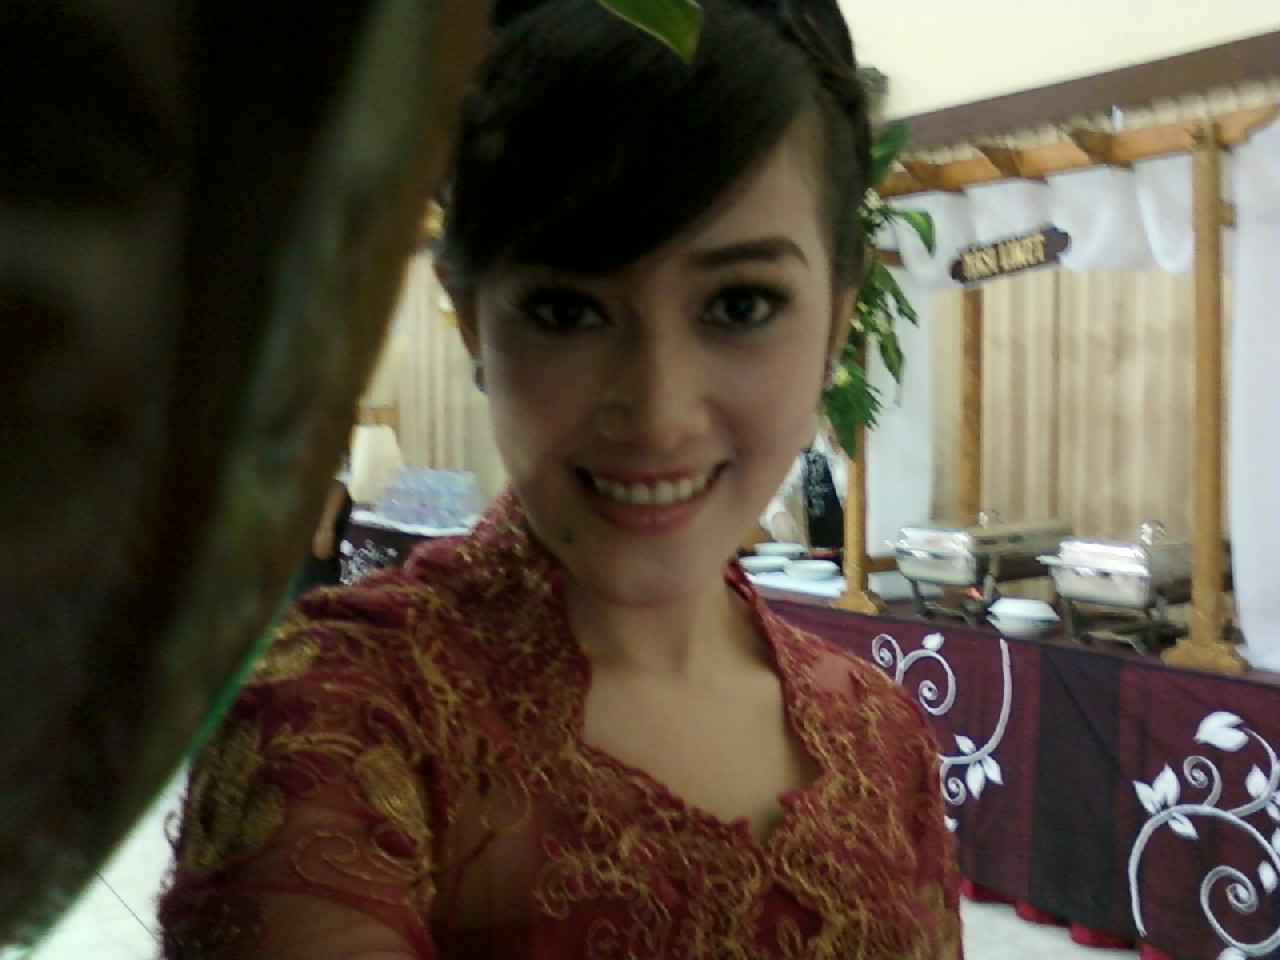 Monster Bego Indonesia Face Beautiful Girl-1331